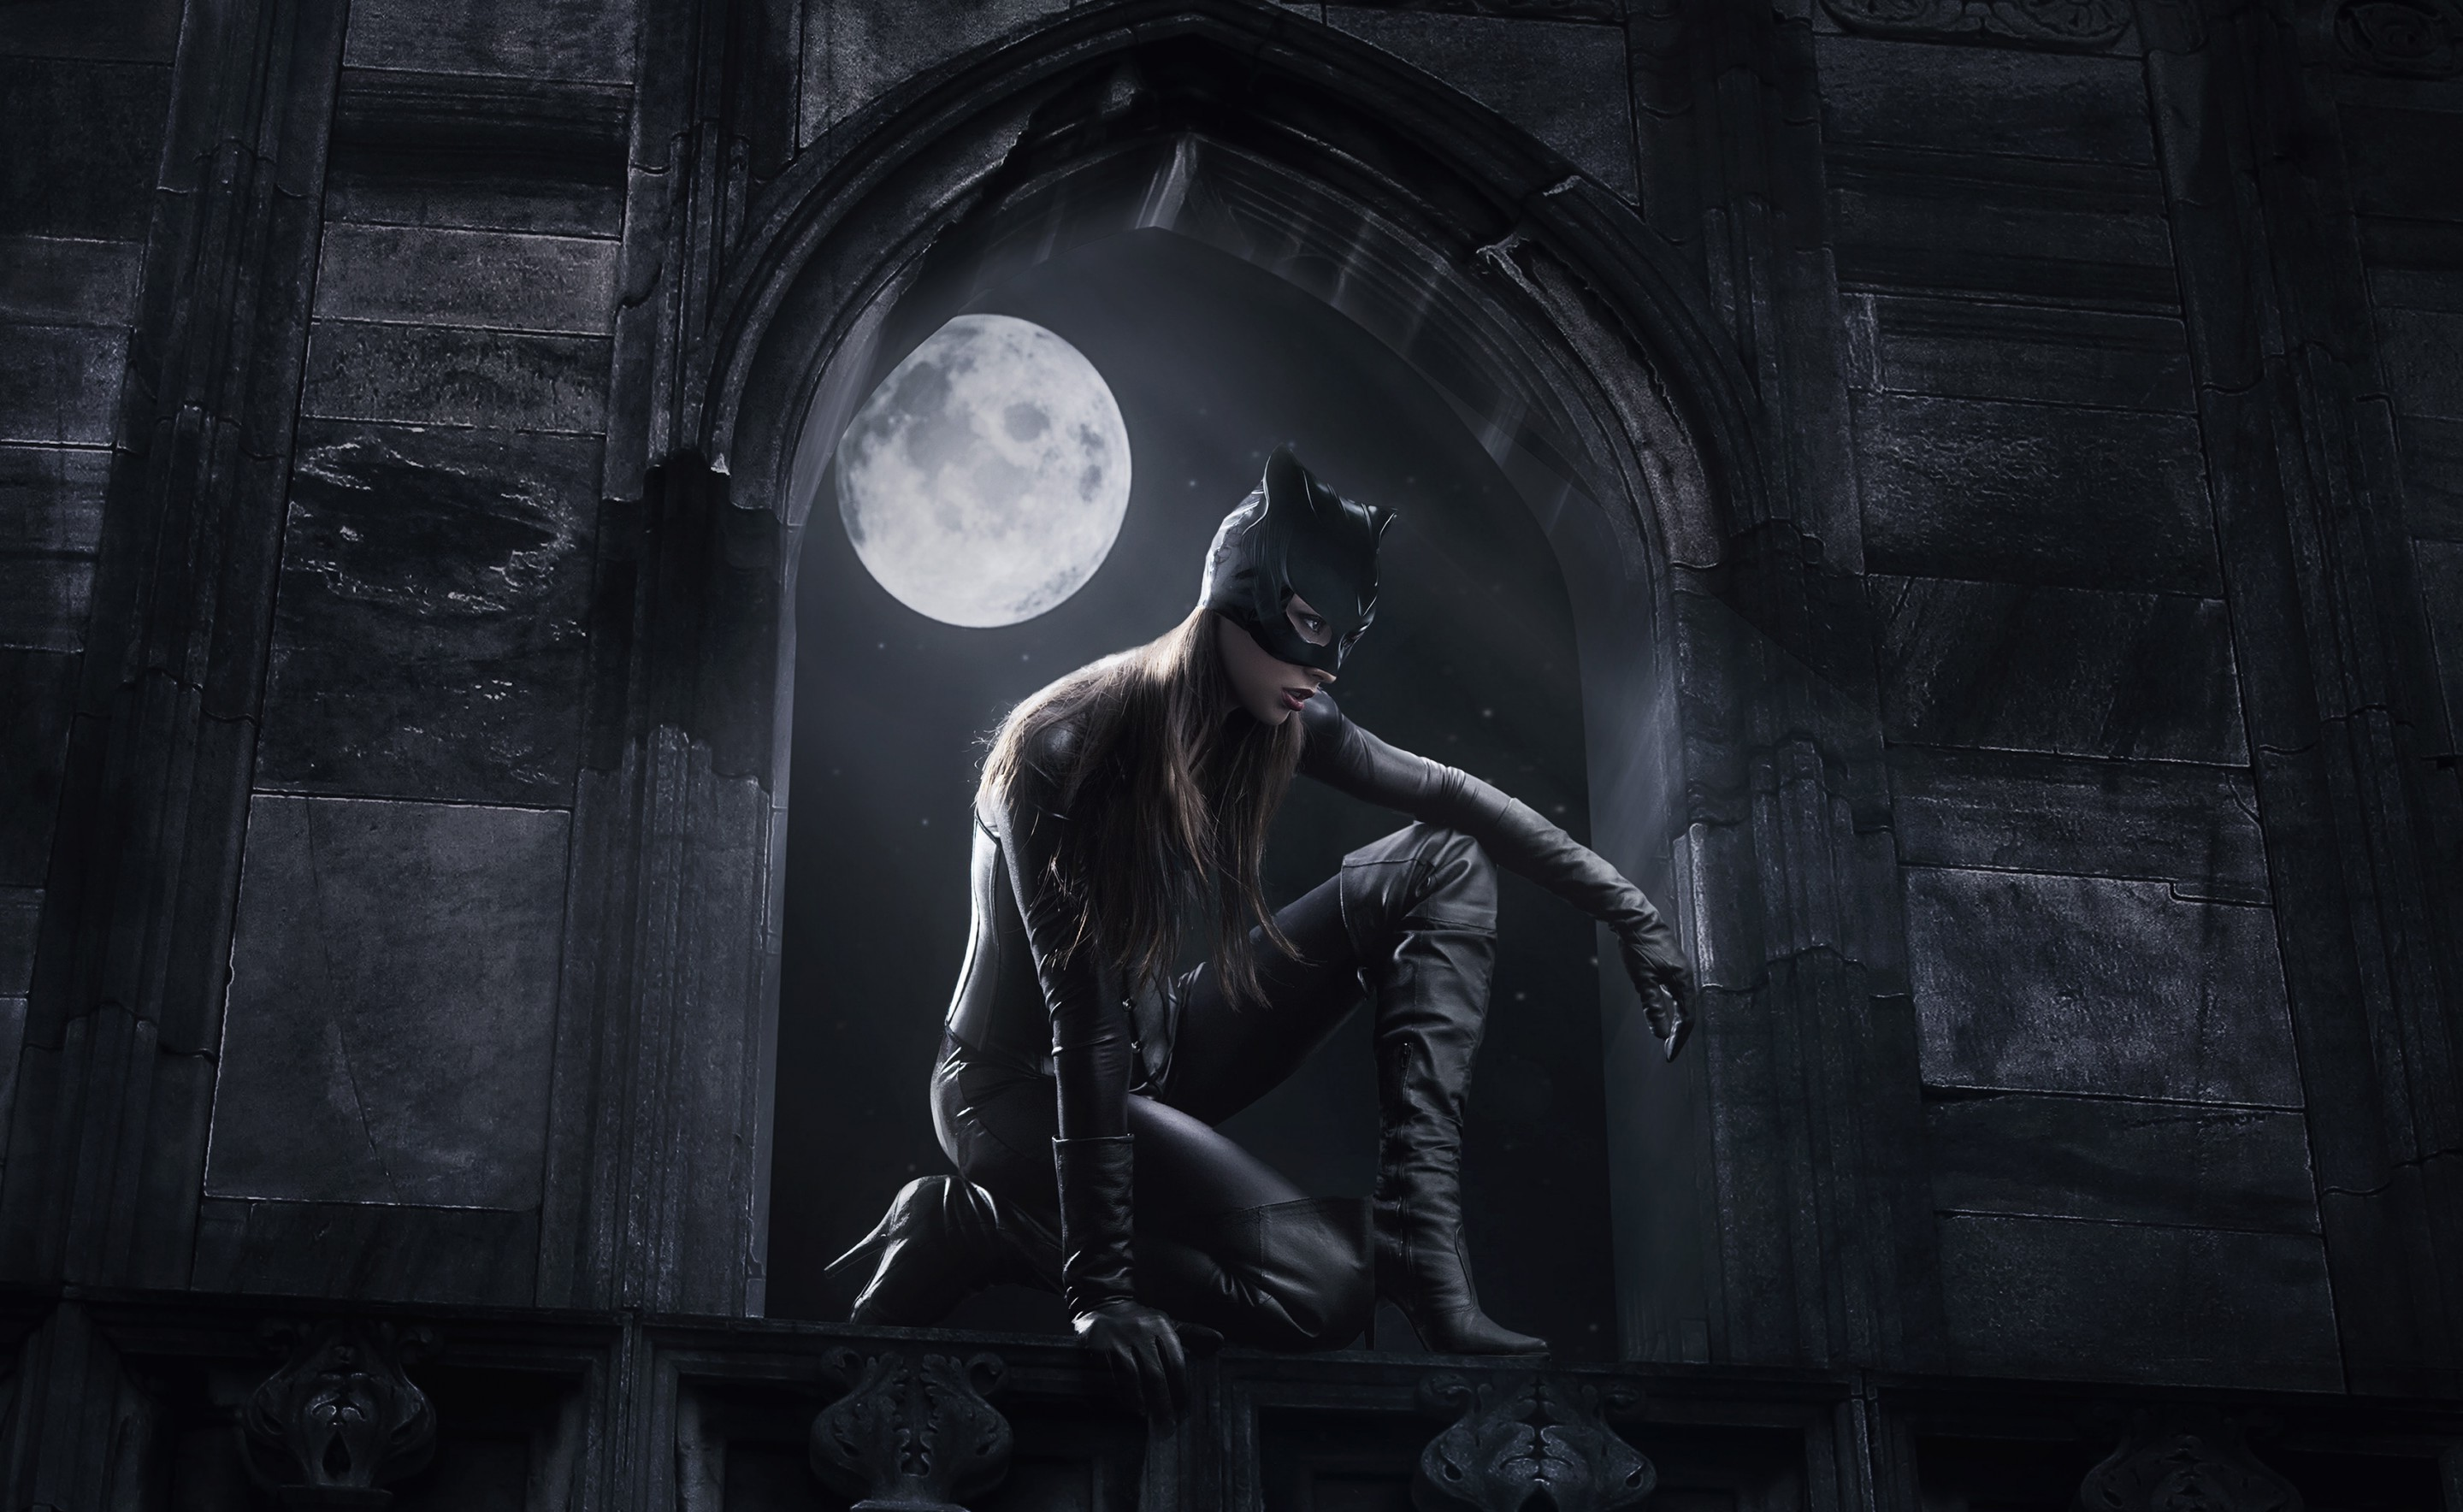 Catwoman wallpaper hd 79 images - Art wallpaper hd for mobile ...